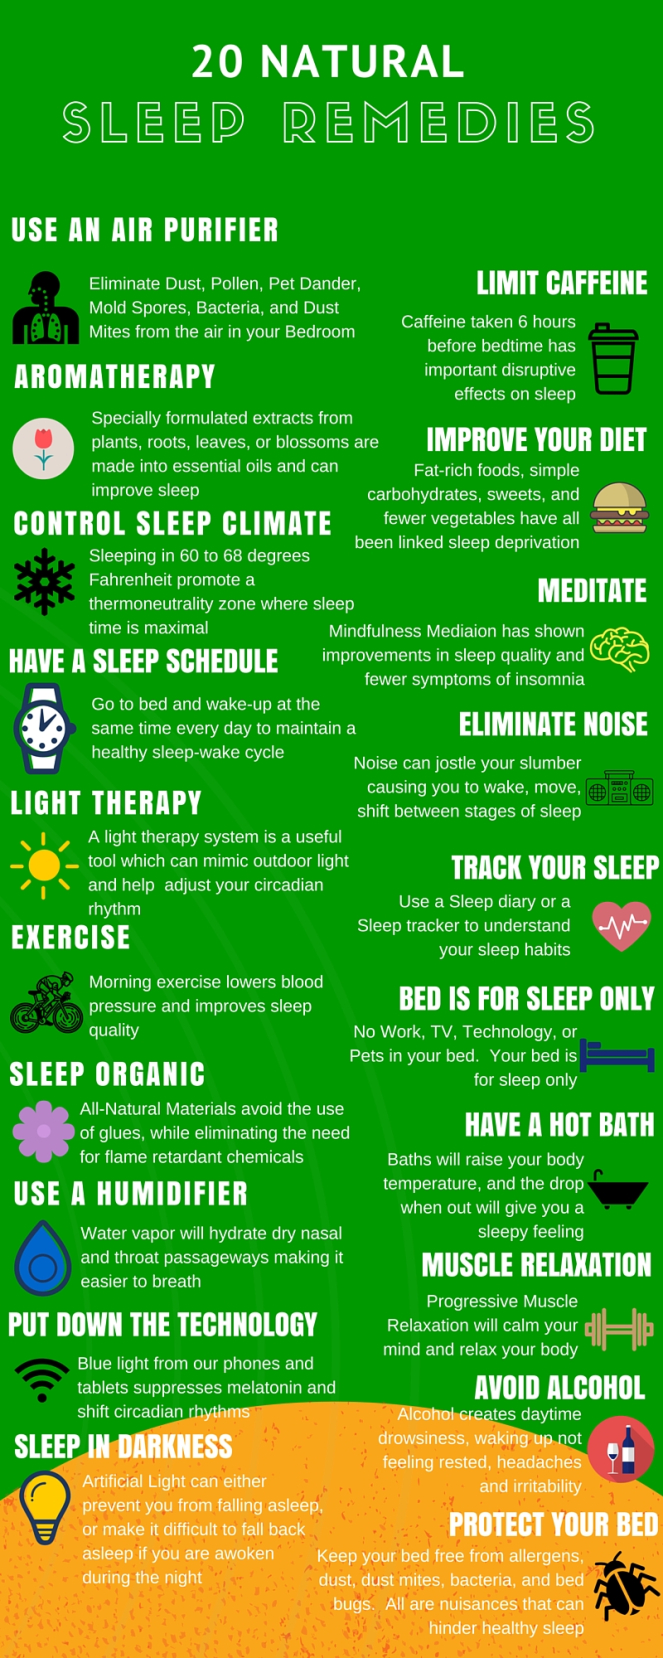 Dealing with Sleep Issues